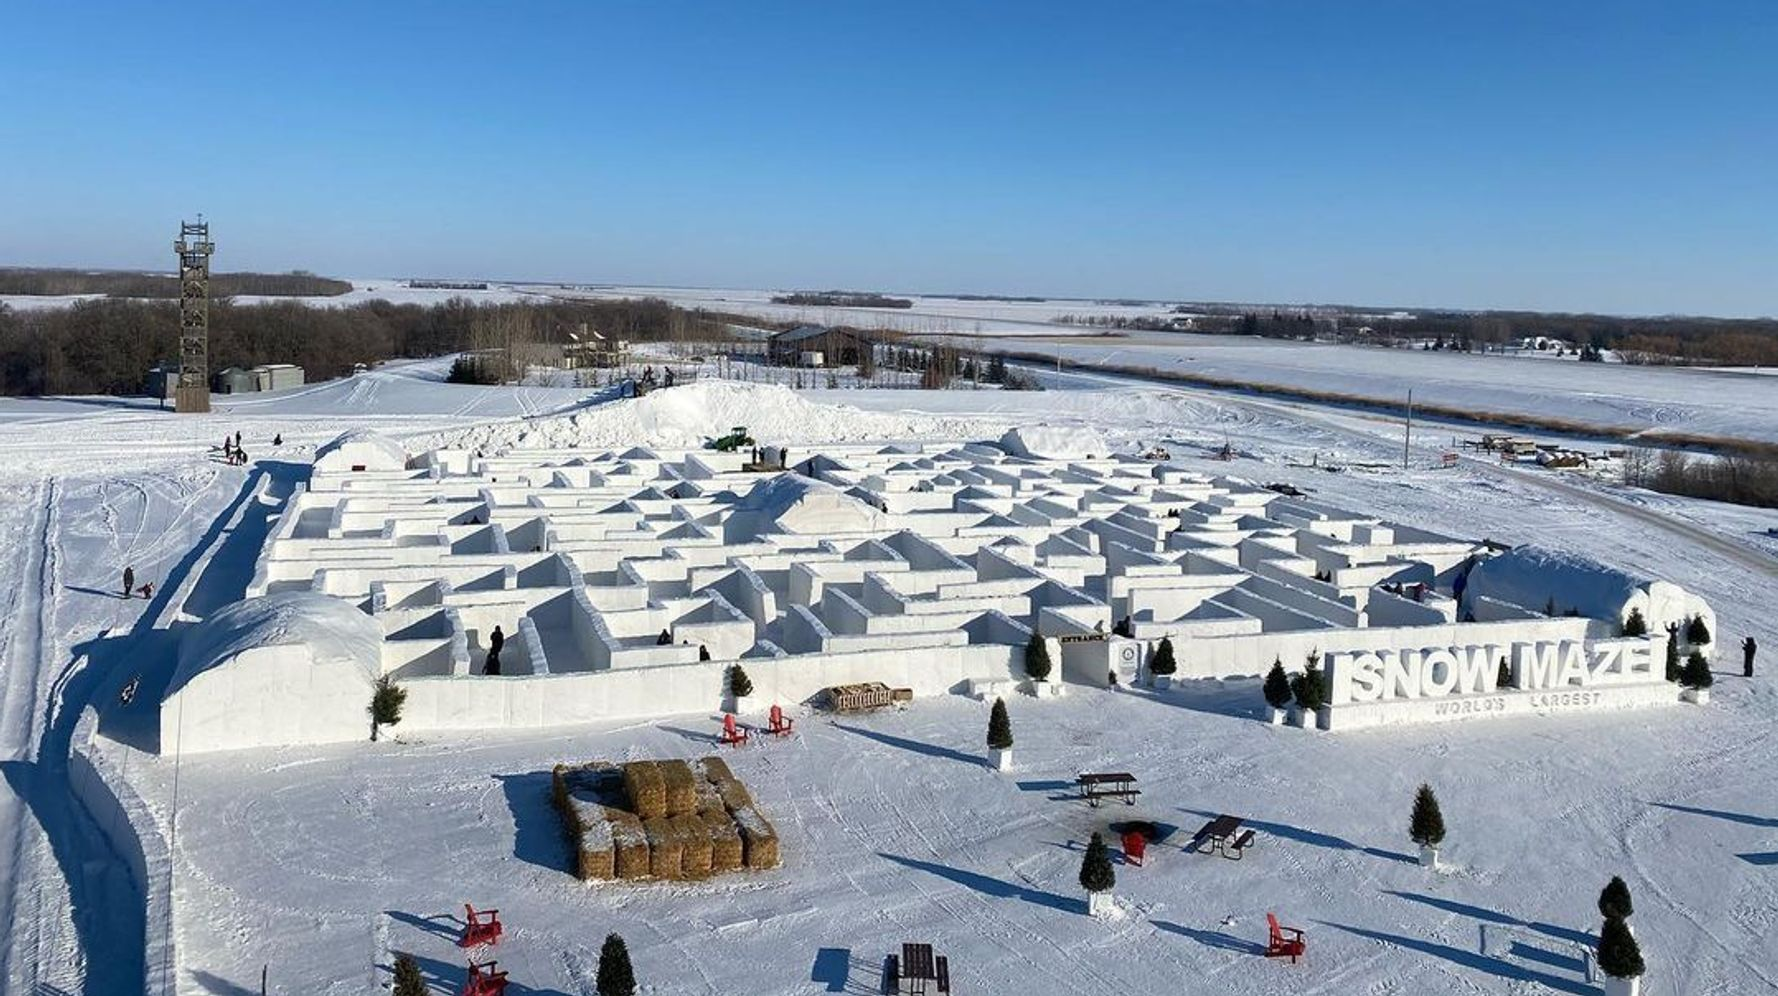 What A Joy It Would Be To Stroll In This Canadian Snow Maze Right Now